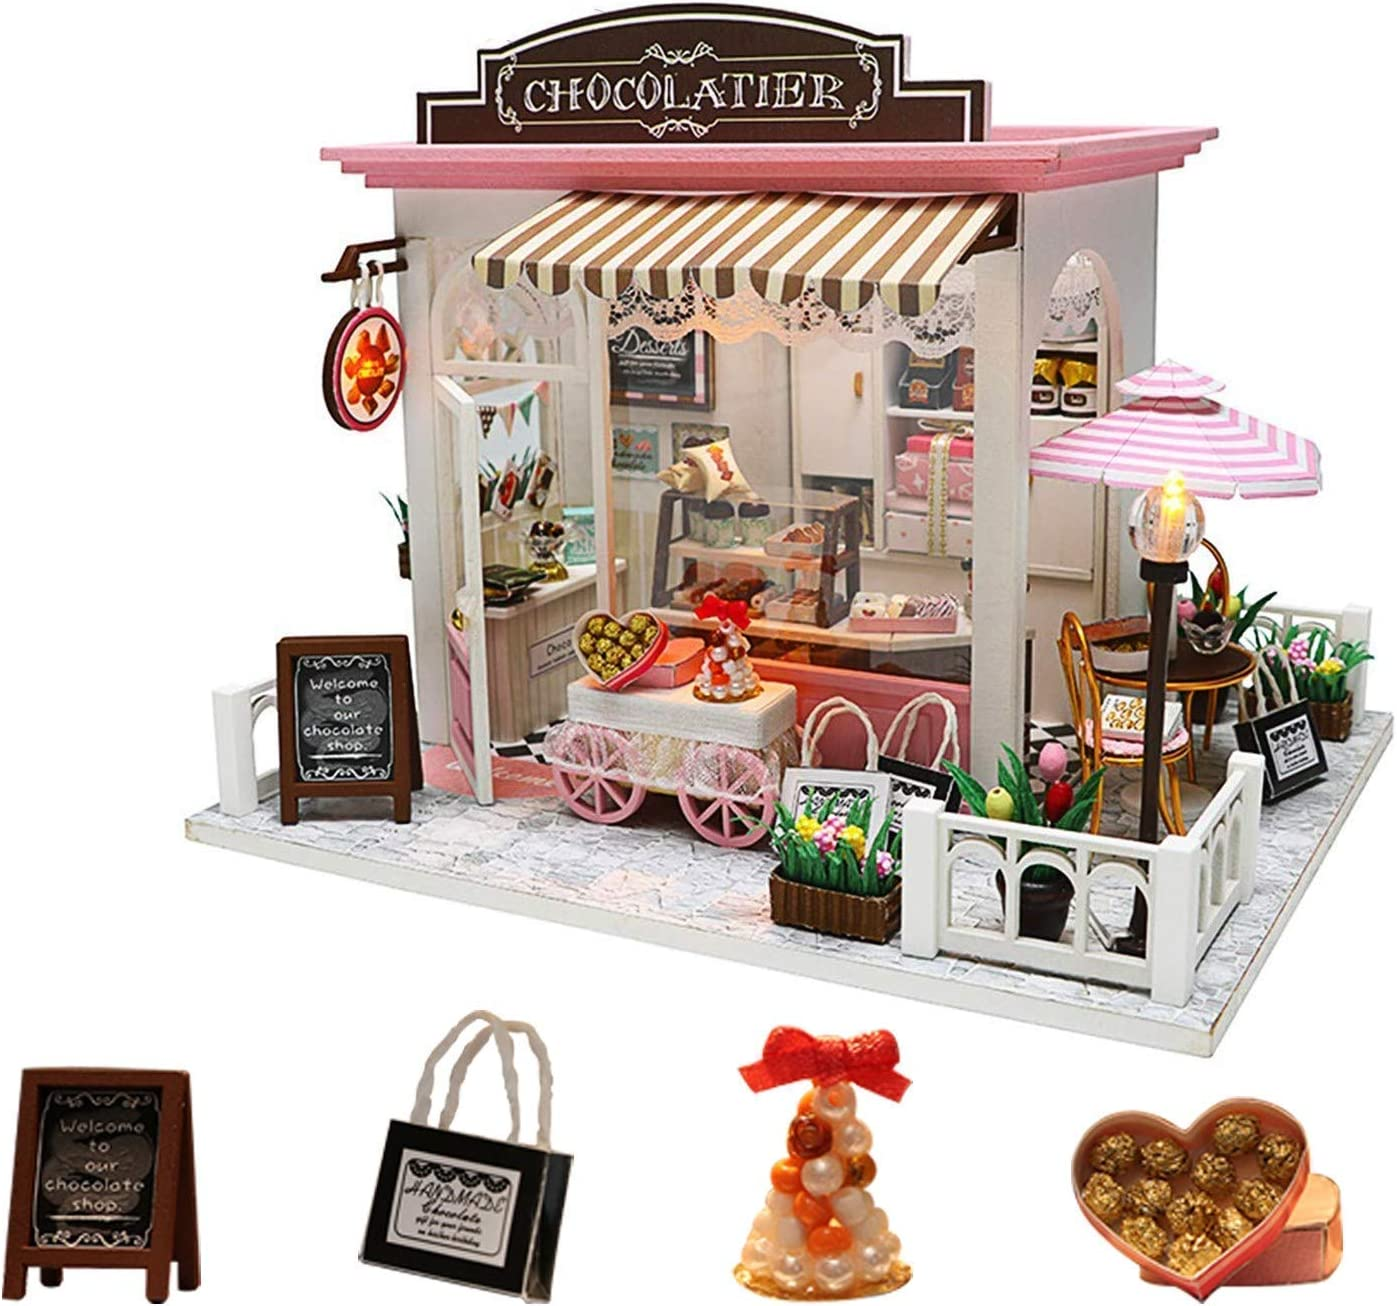 ARELUX Dollhouse Miniature with Furniture, 3D Wooden DIY Dollhouse Kit with Dust Proof and Music Movement, 1:24 Scale Creative Room Idea,Gifts for Valentine,Birthday, Christmas